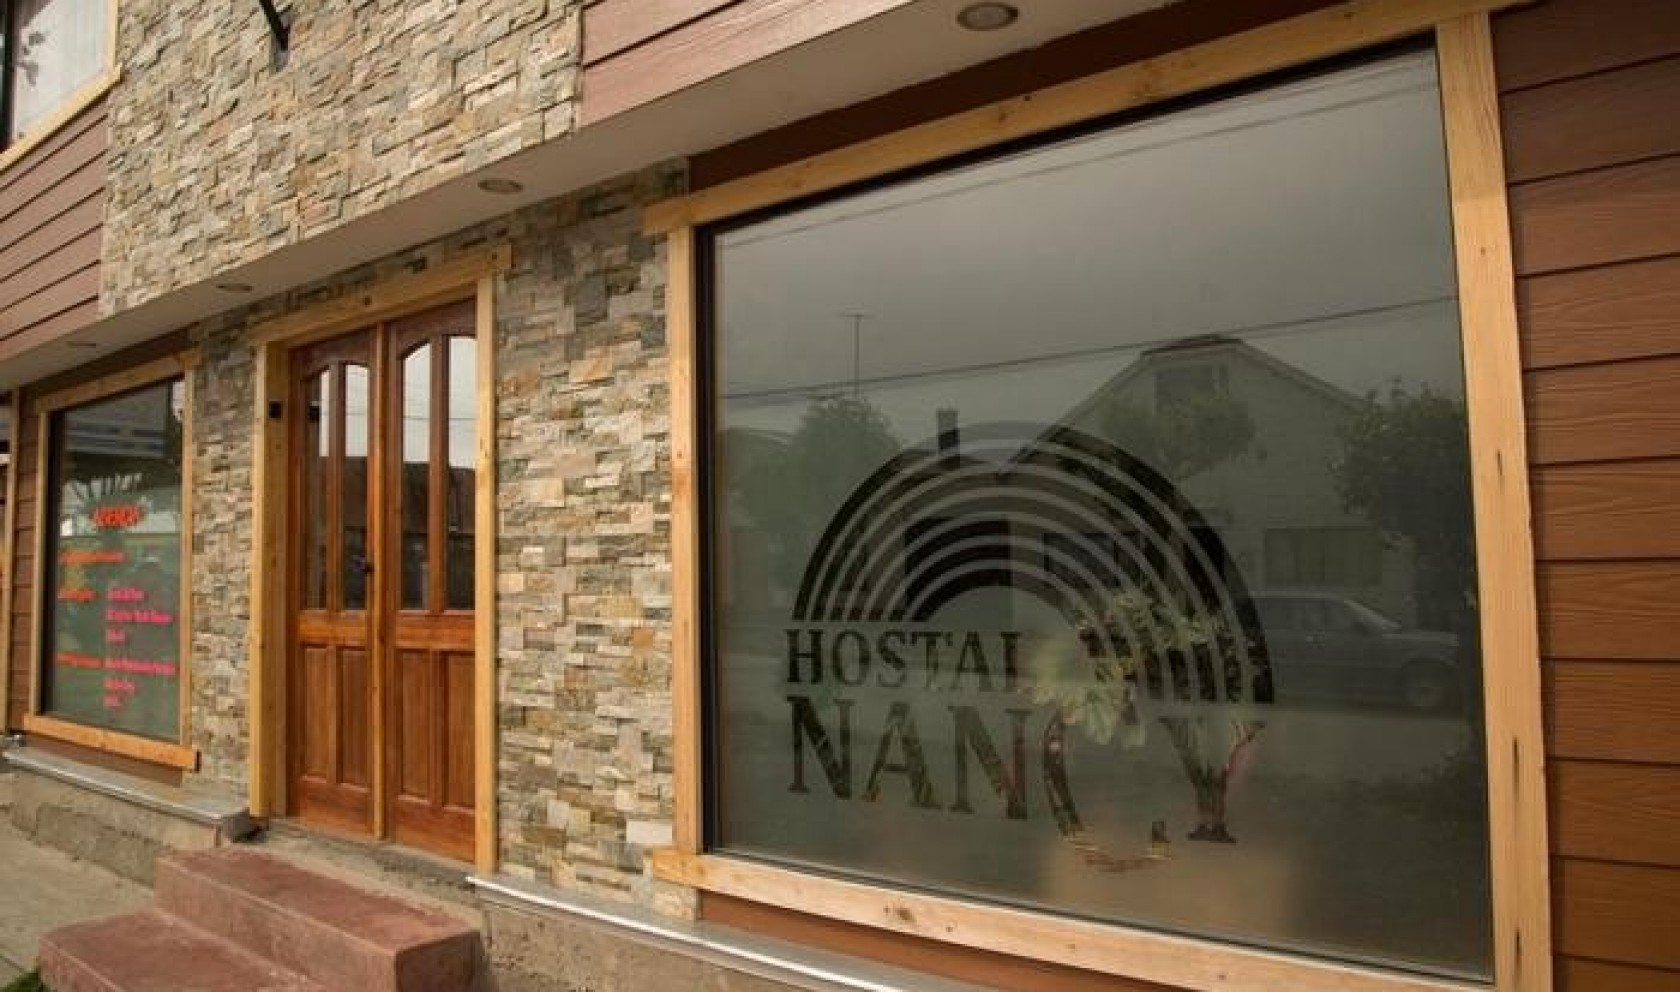 Hostal Nancy